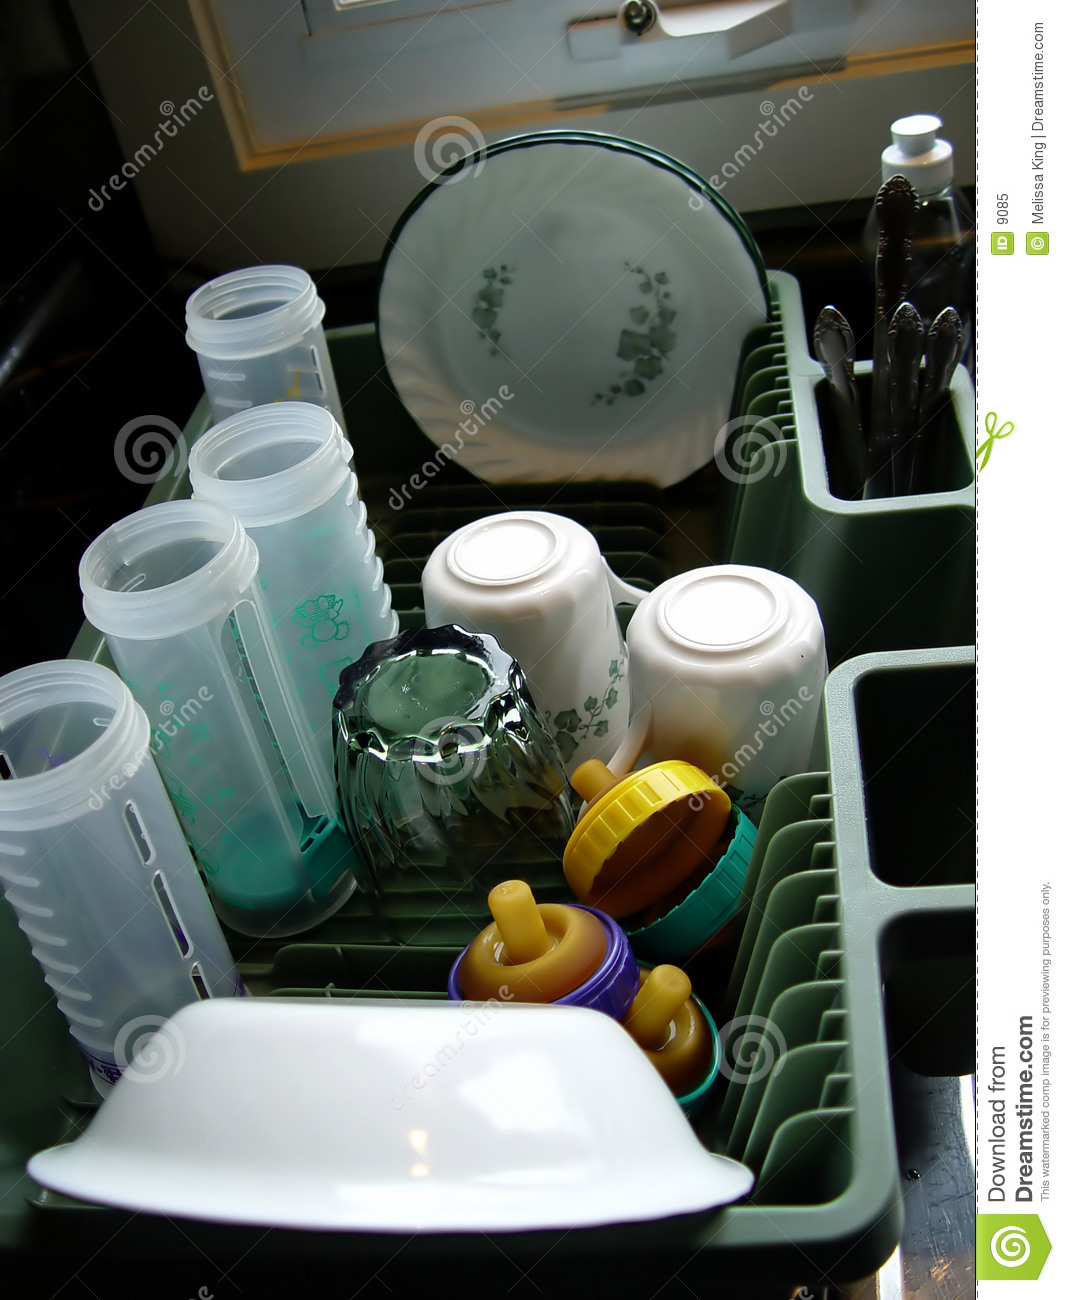 Clean Dishes in Tray